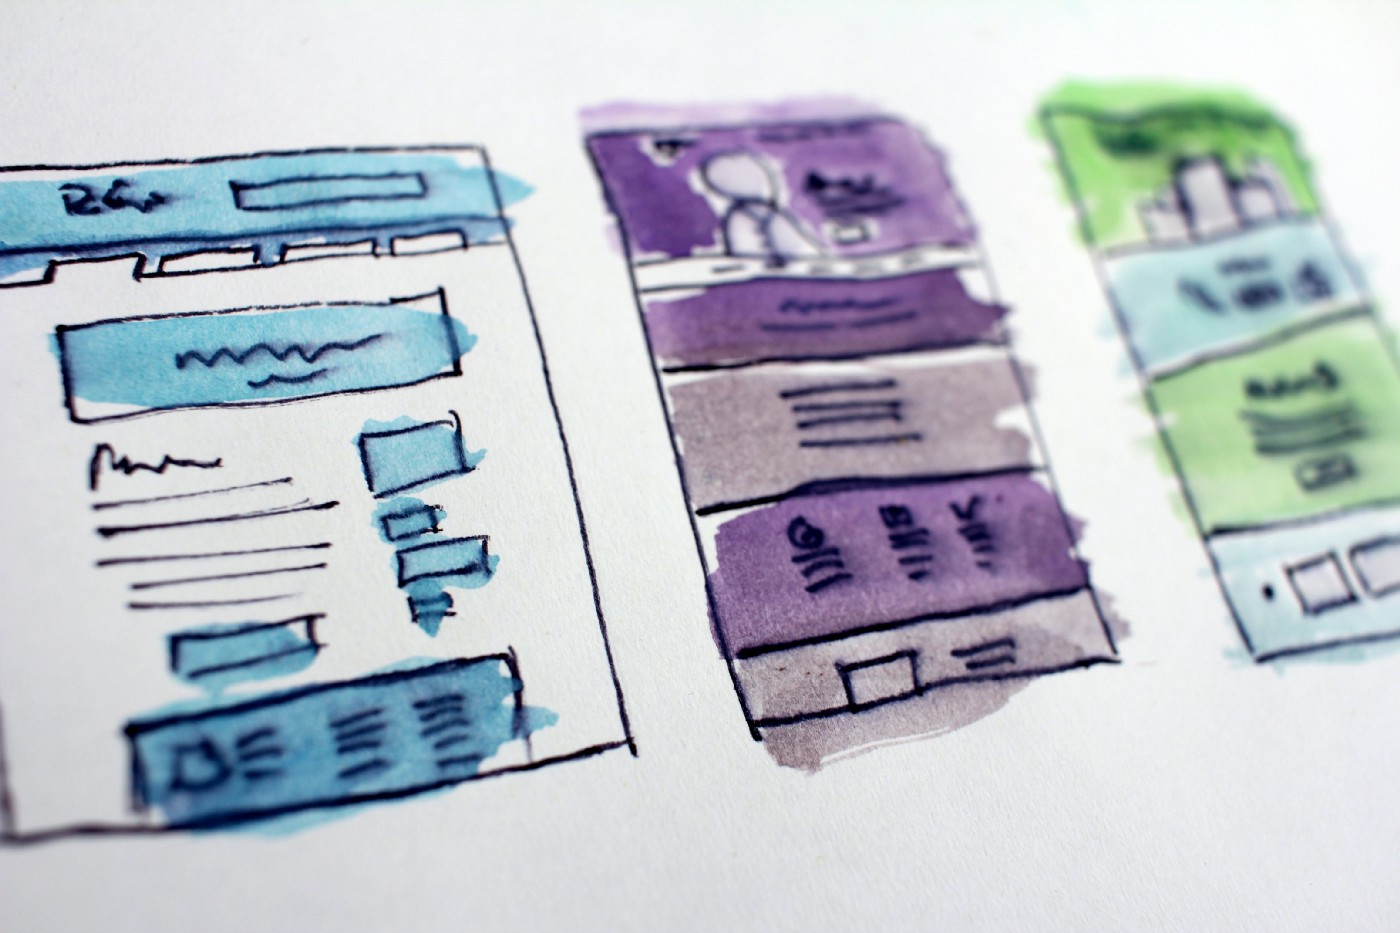 Hand-drawn wireframes watercolored in blue, purple, and green